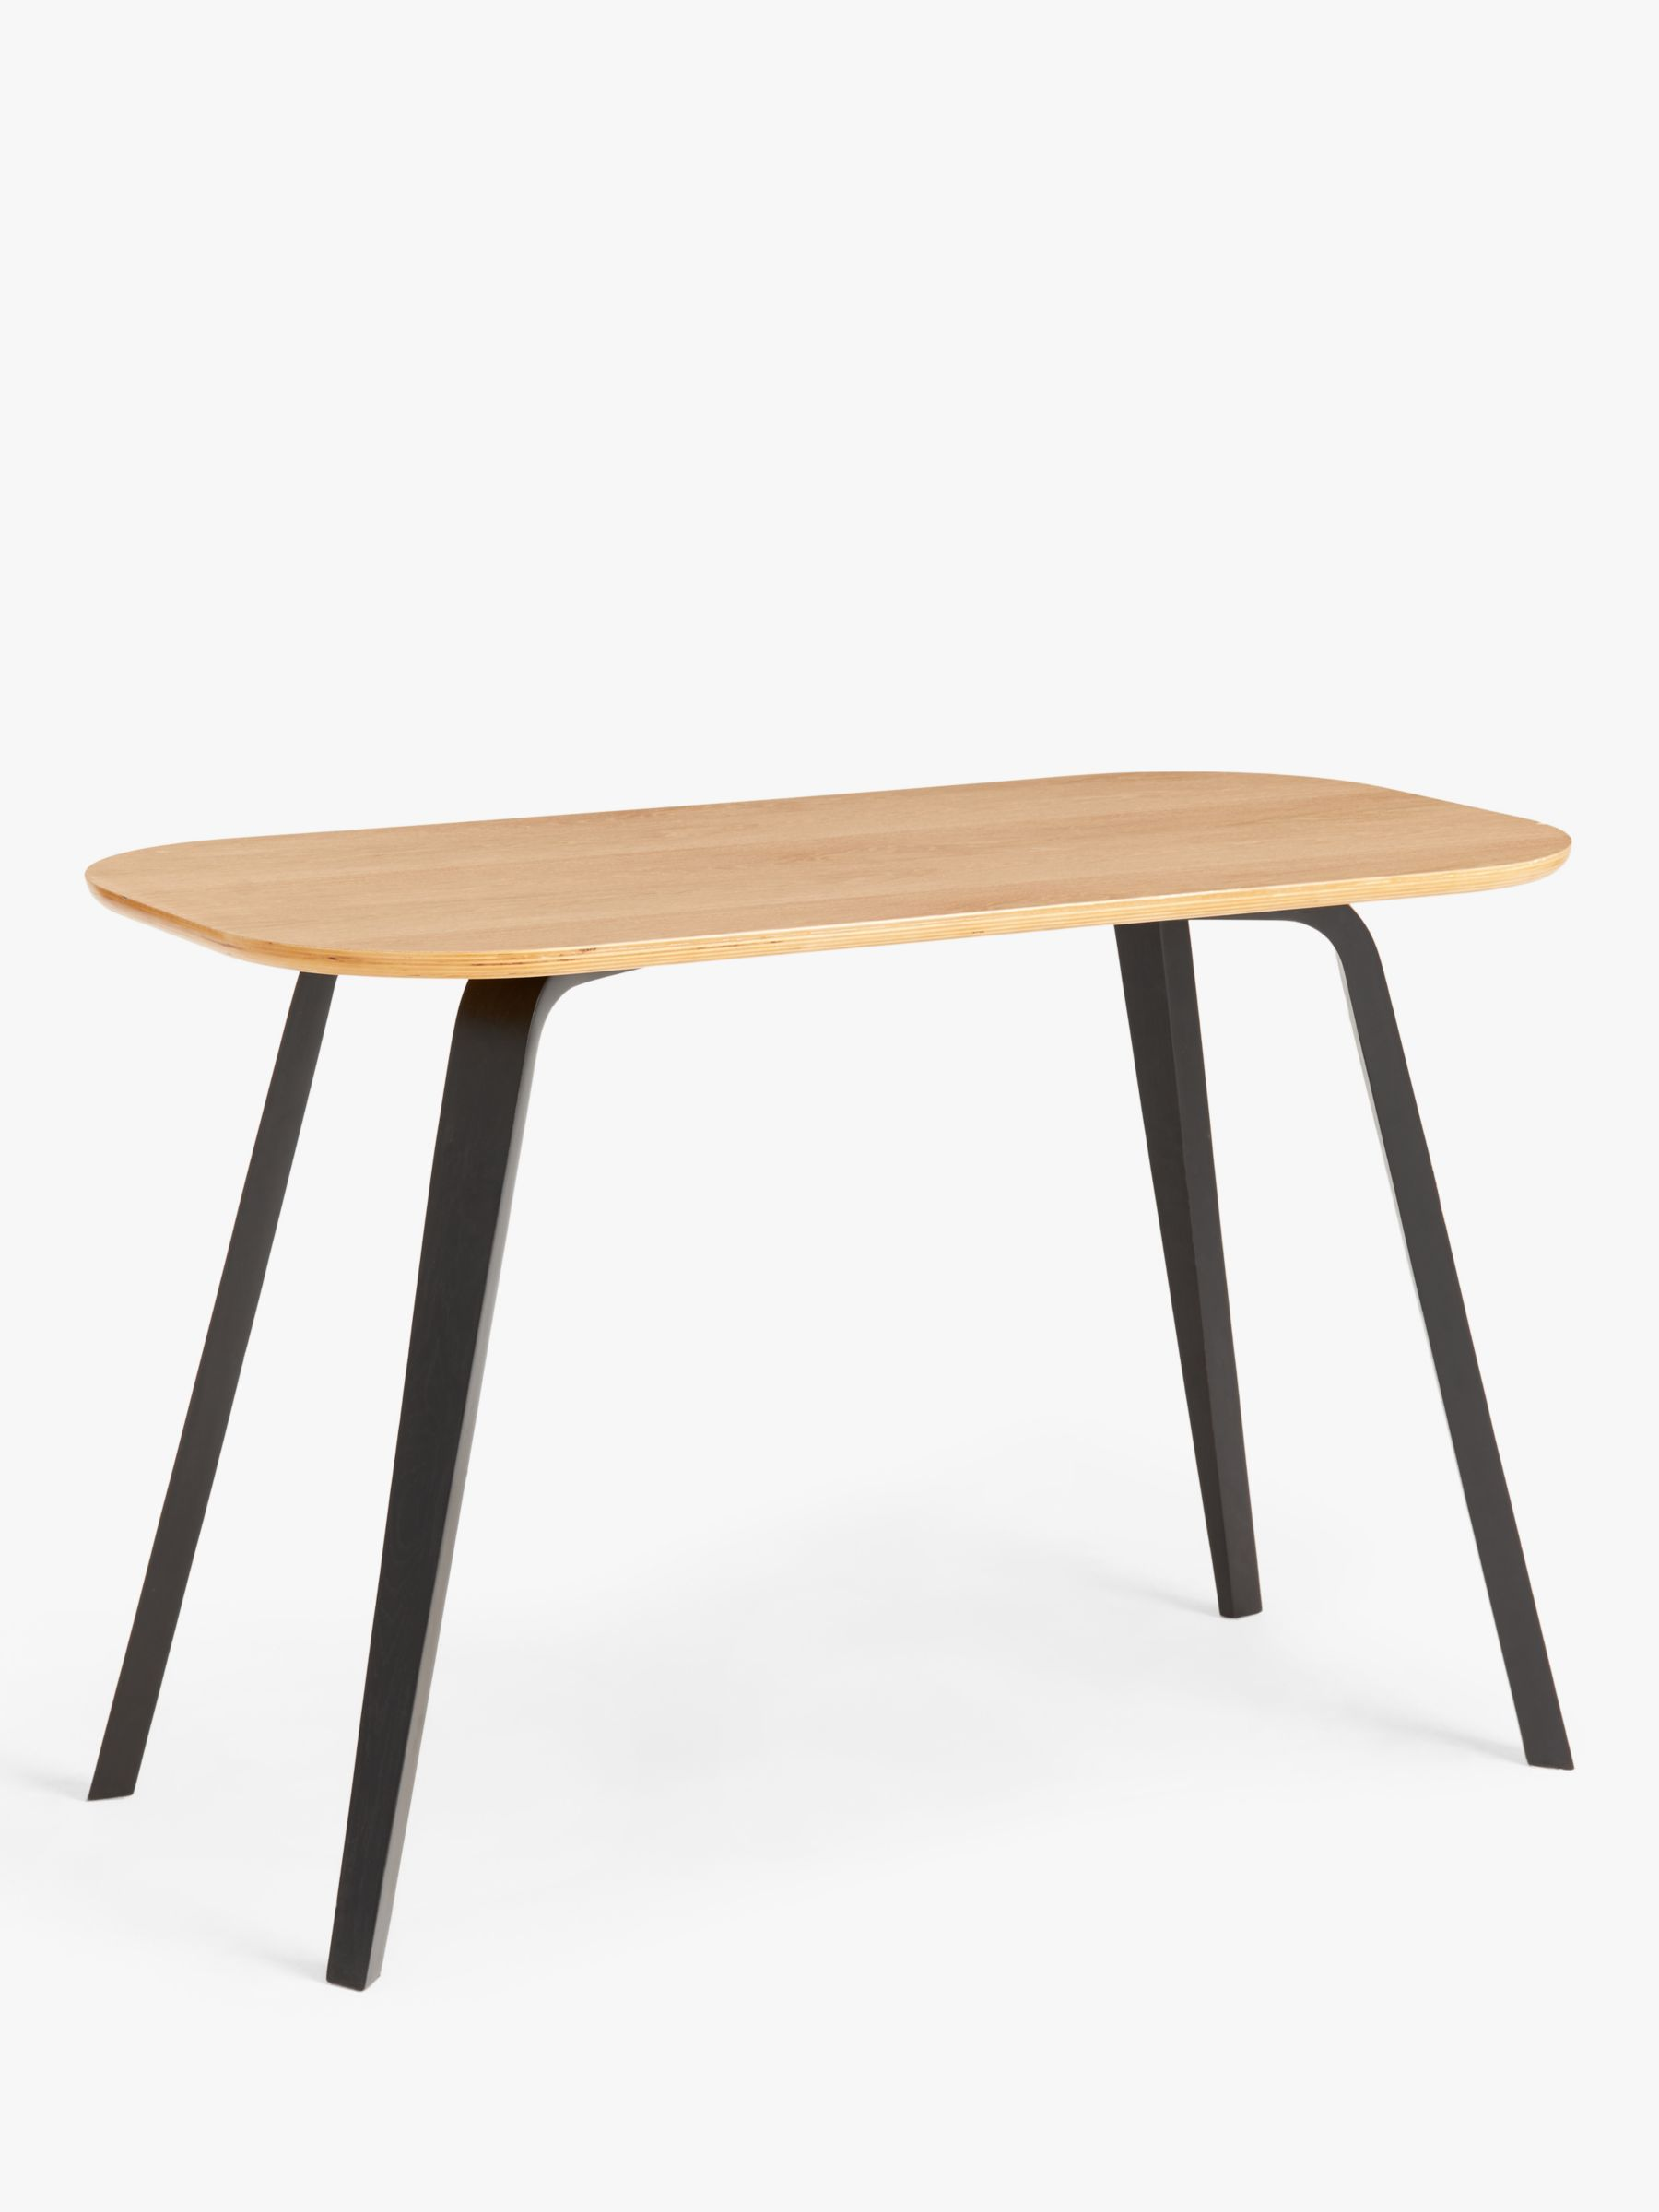 Anton Desk for working from home or office